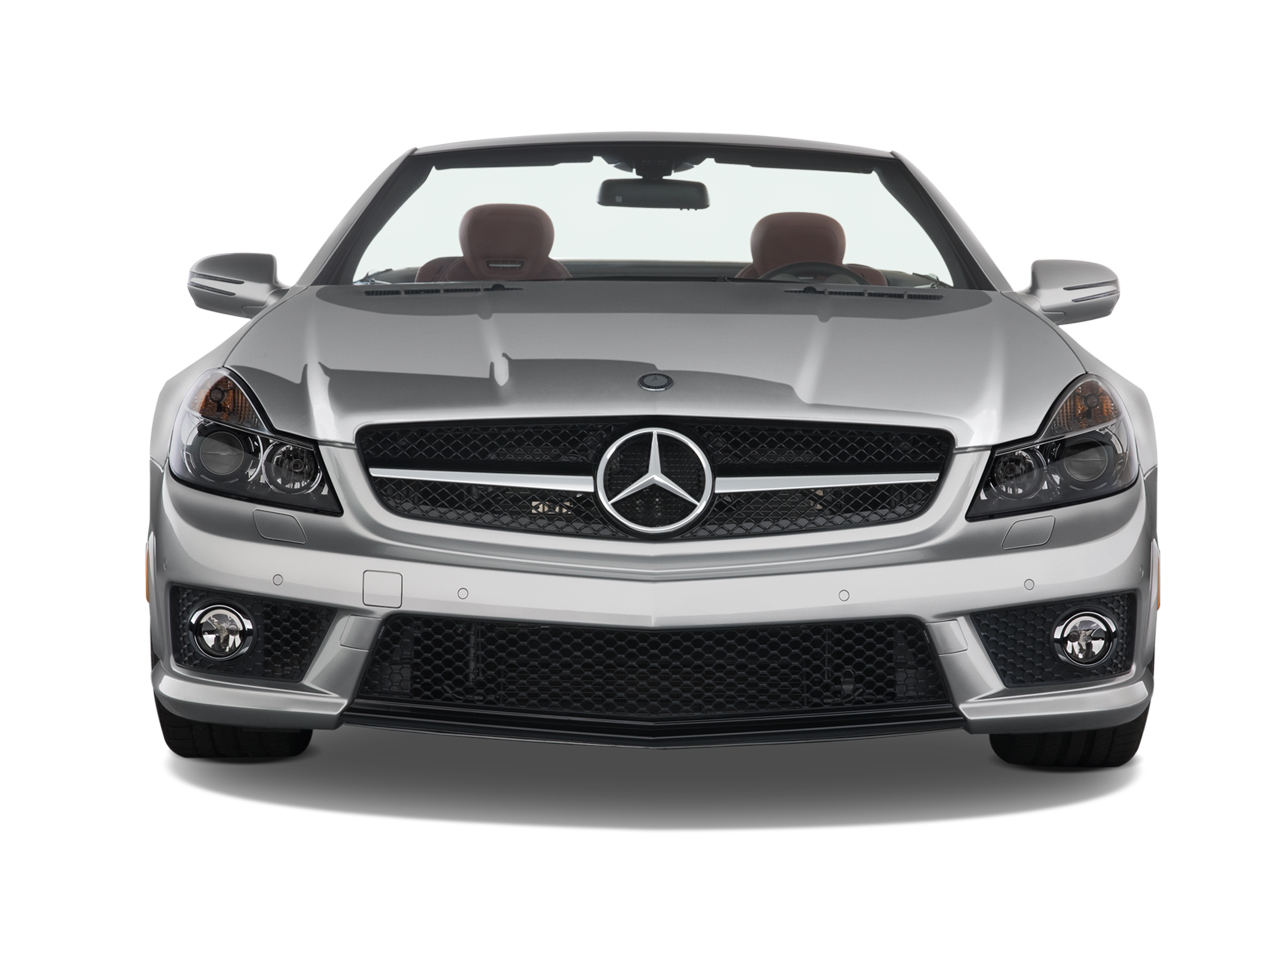 2011 mercedes benz sl class review and news motorauthority for 2011 mercedes benz sl class